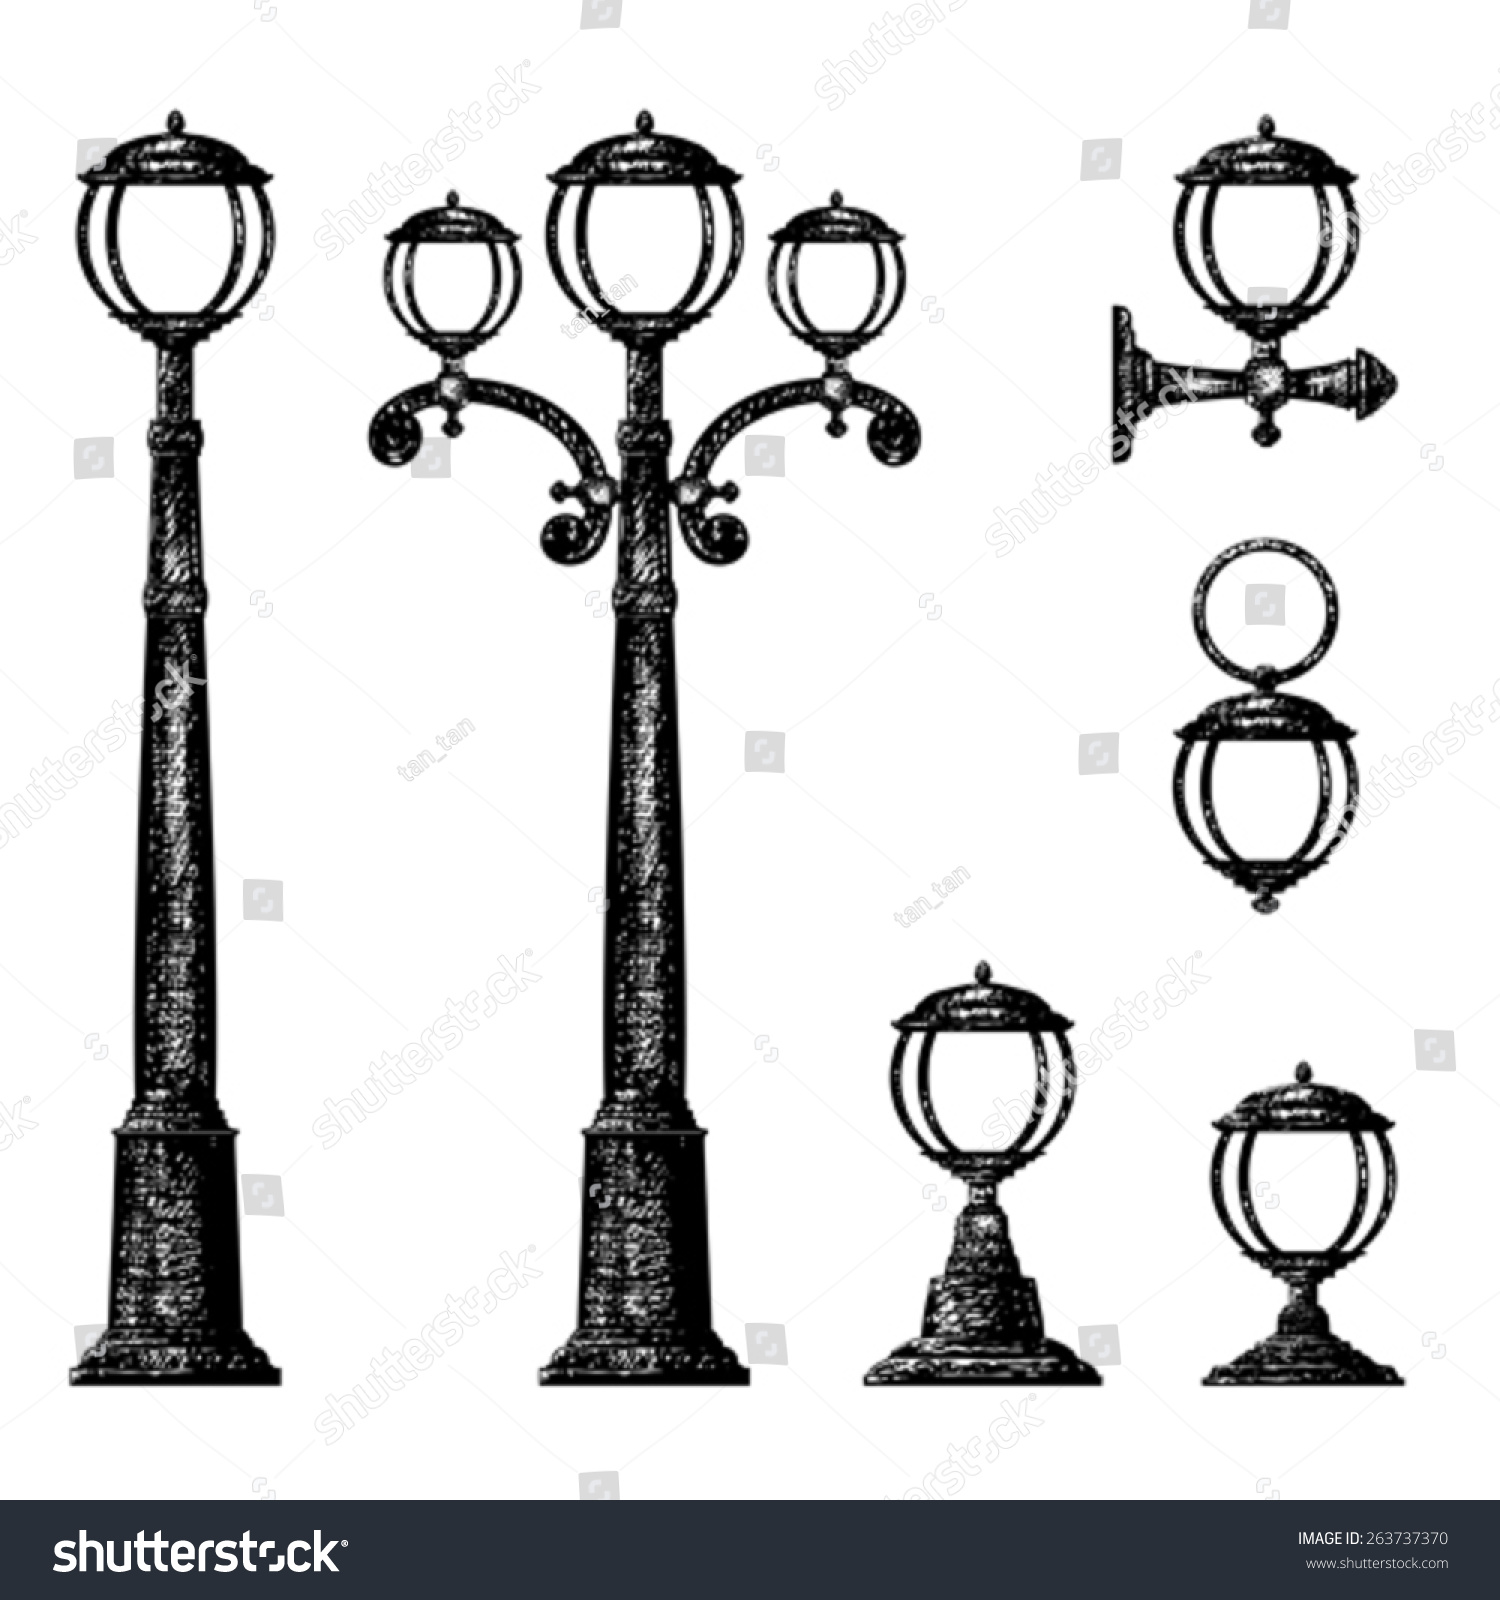 Sketch Street Light Vector Drawing Stock Vector HD (Royalty Free ... for Street Light Sketch  110zmd